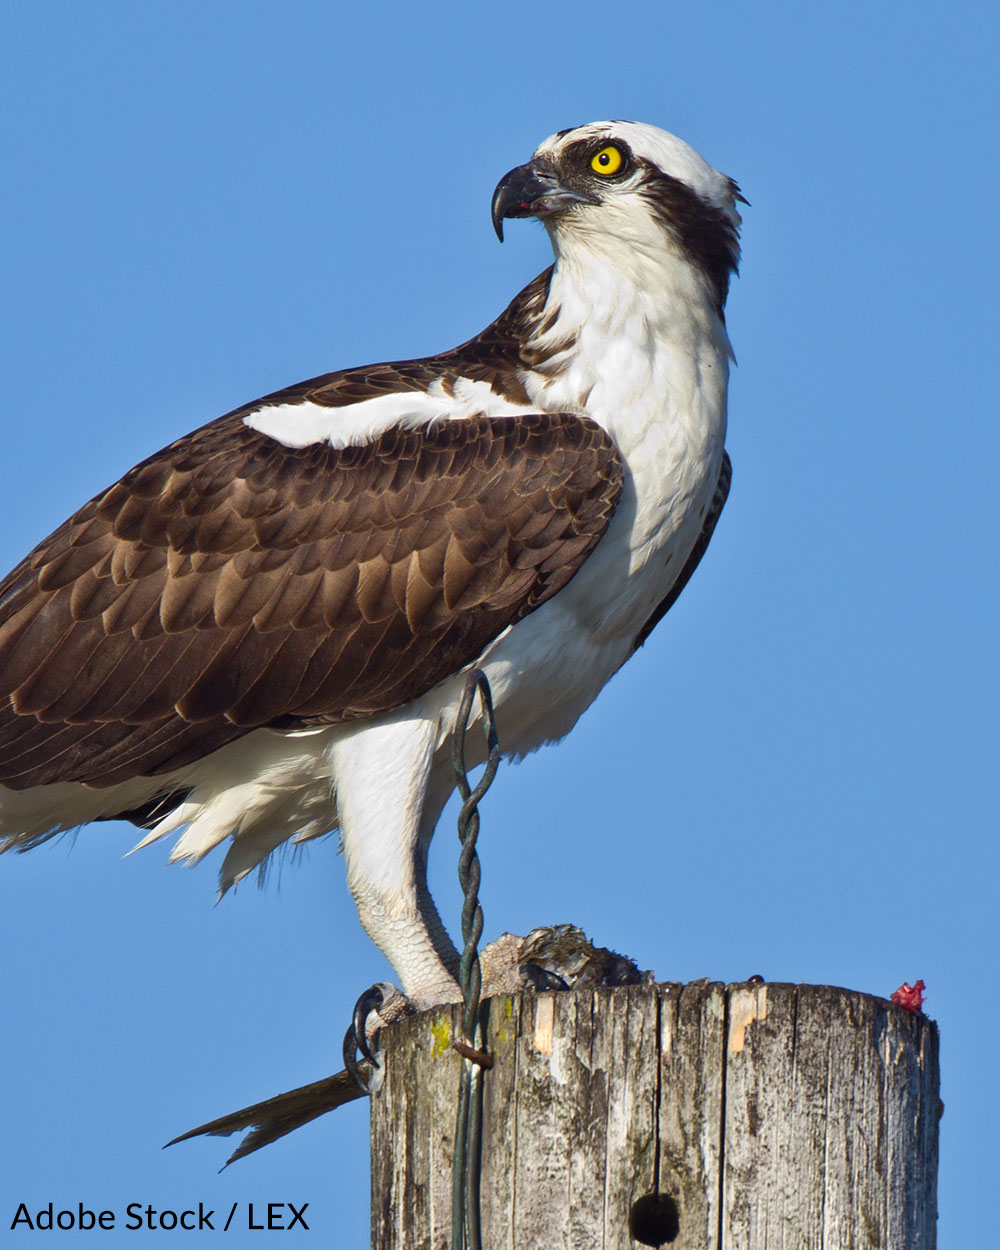 Help us protect the majestic birds of Europe.